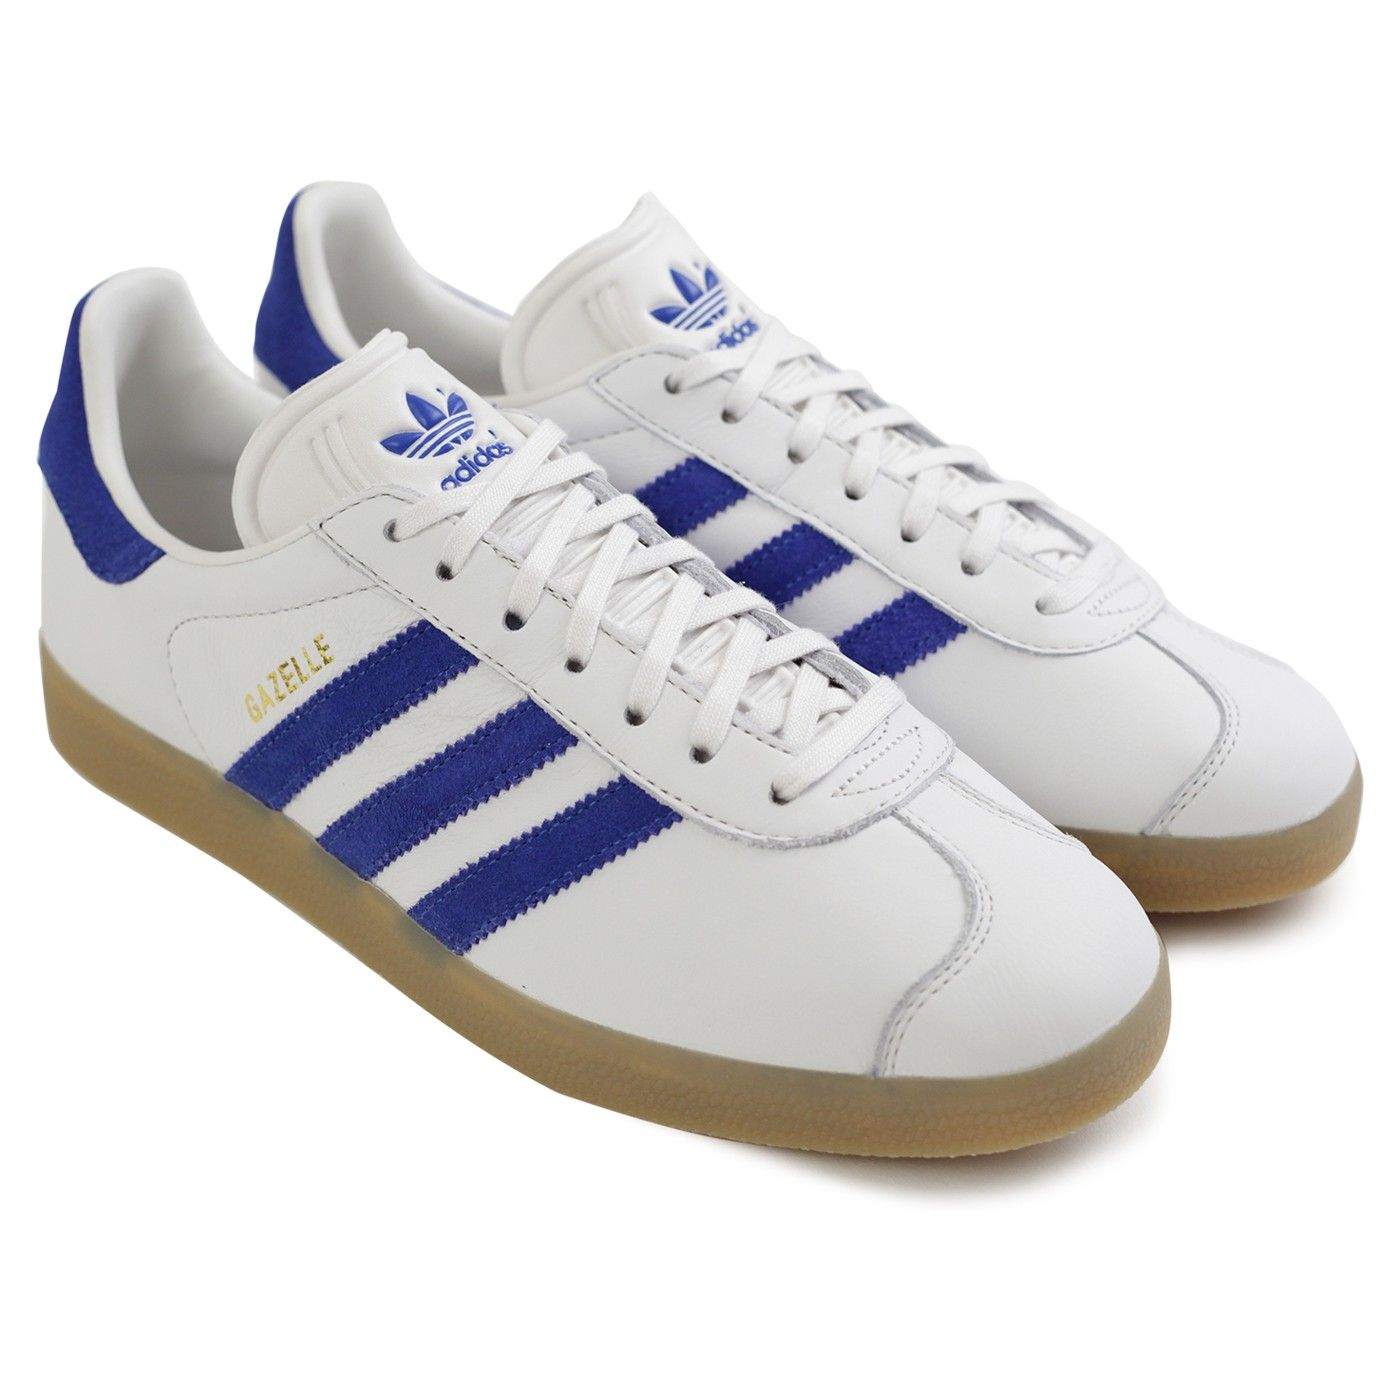 98b5acd24 Gazelle Shoes in Vintage White   Bold Blue   Gum by Adidas Originals ...